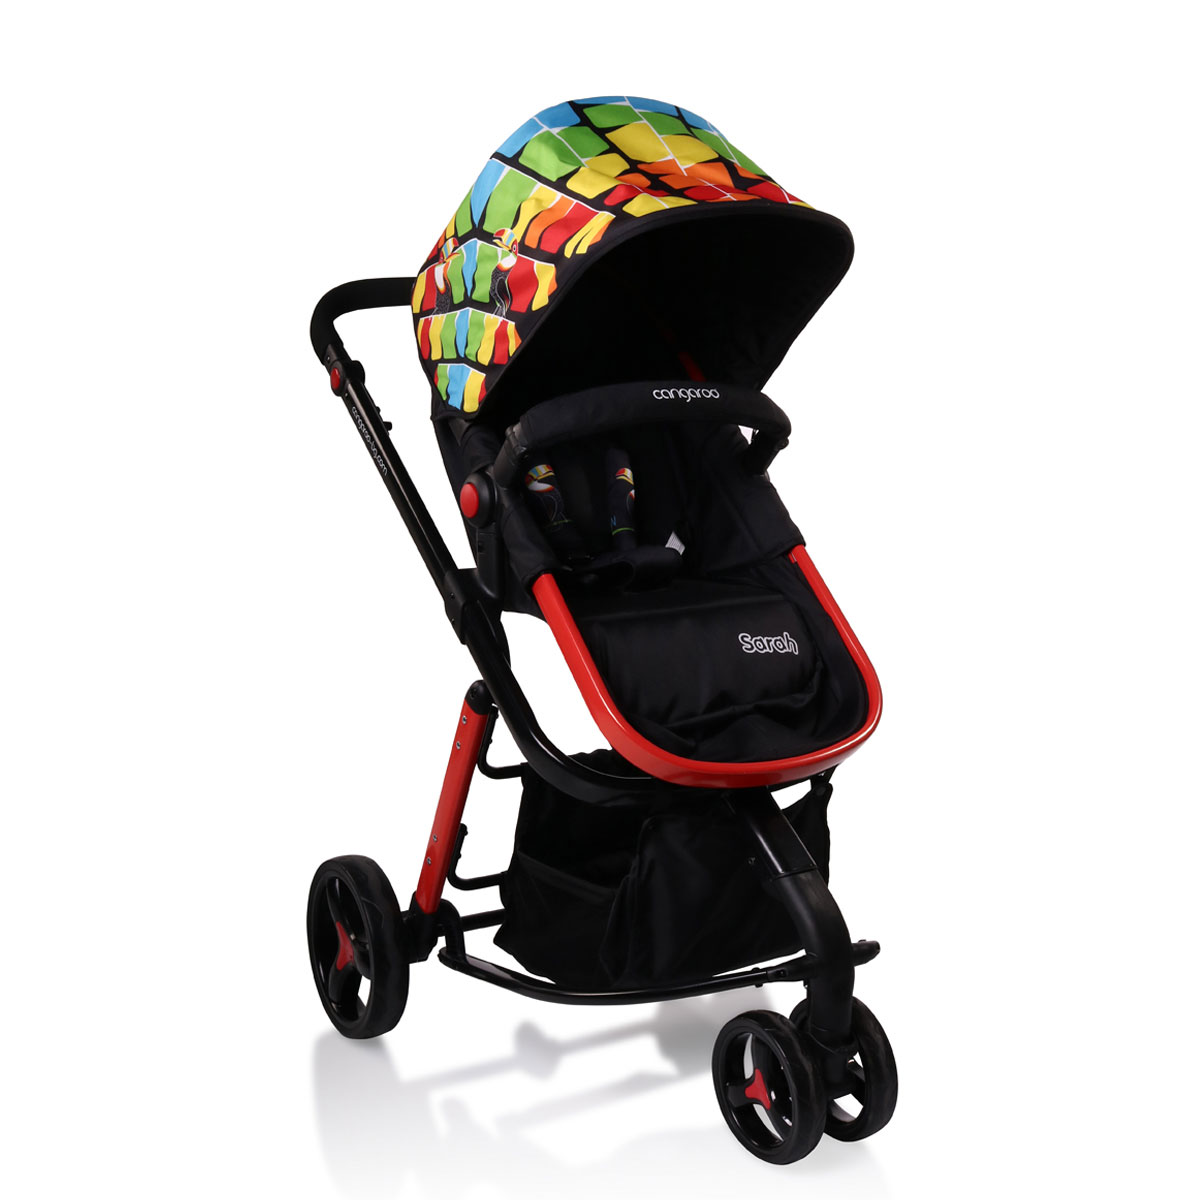 7e131f55099 Καρότσι Sarah colorful cangaroo - Mommys Baby